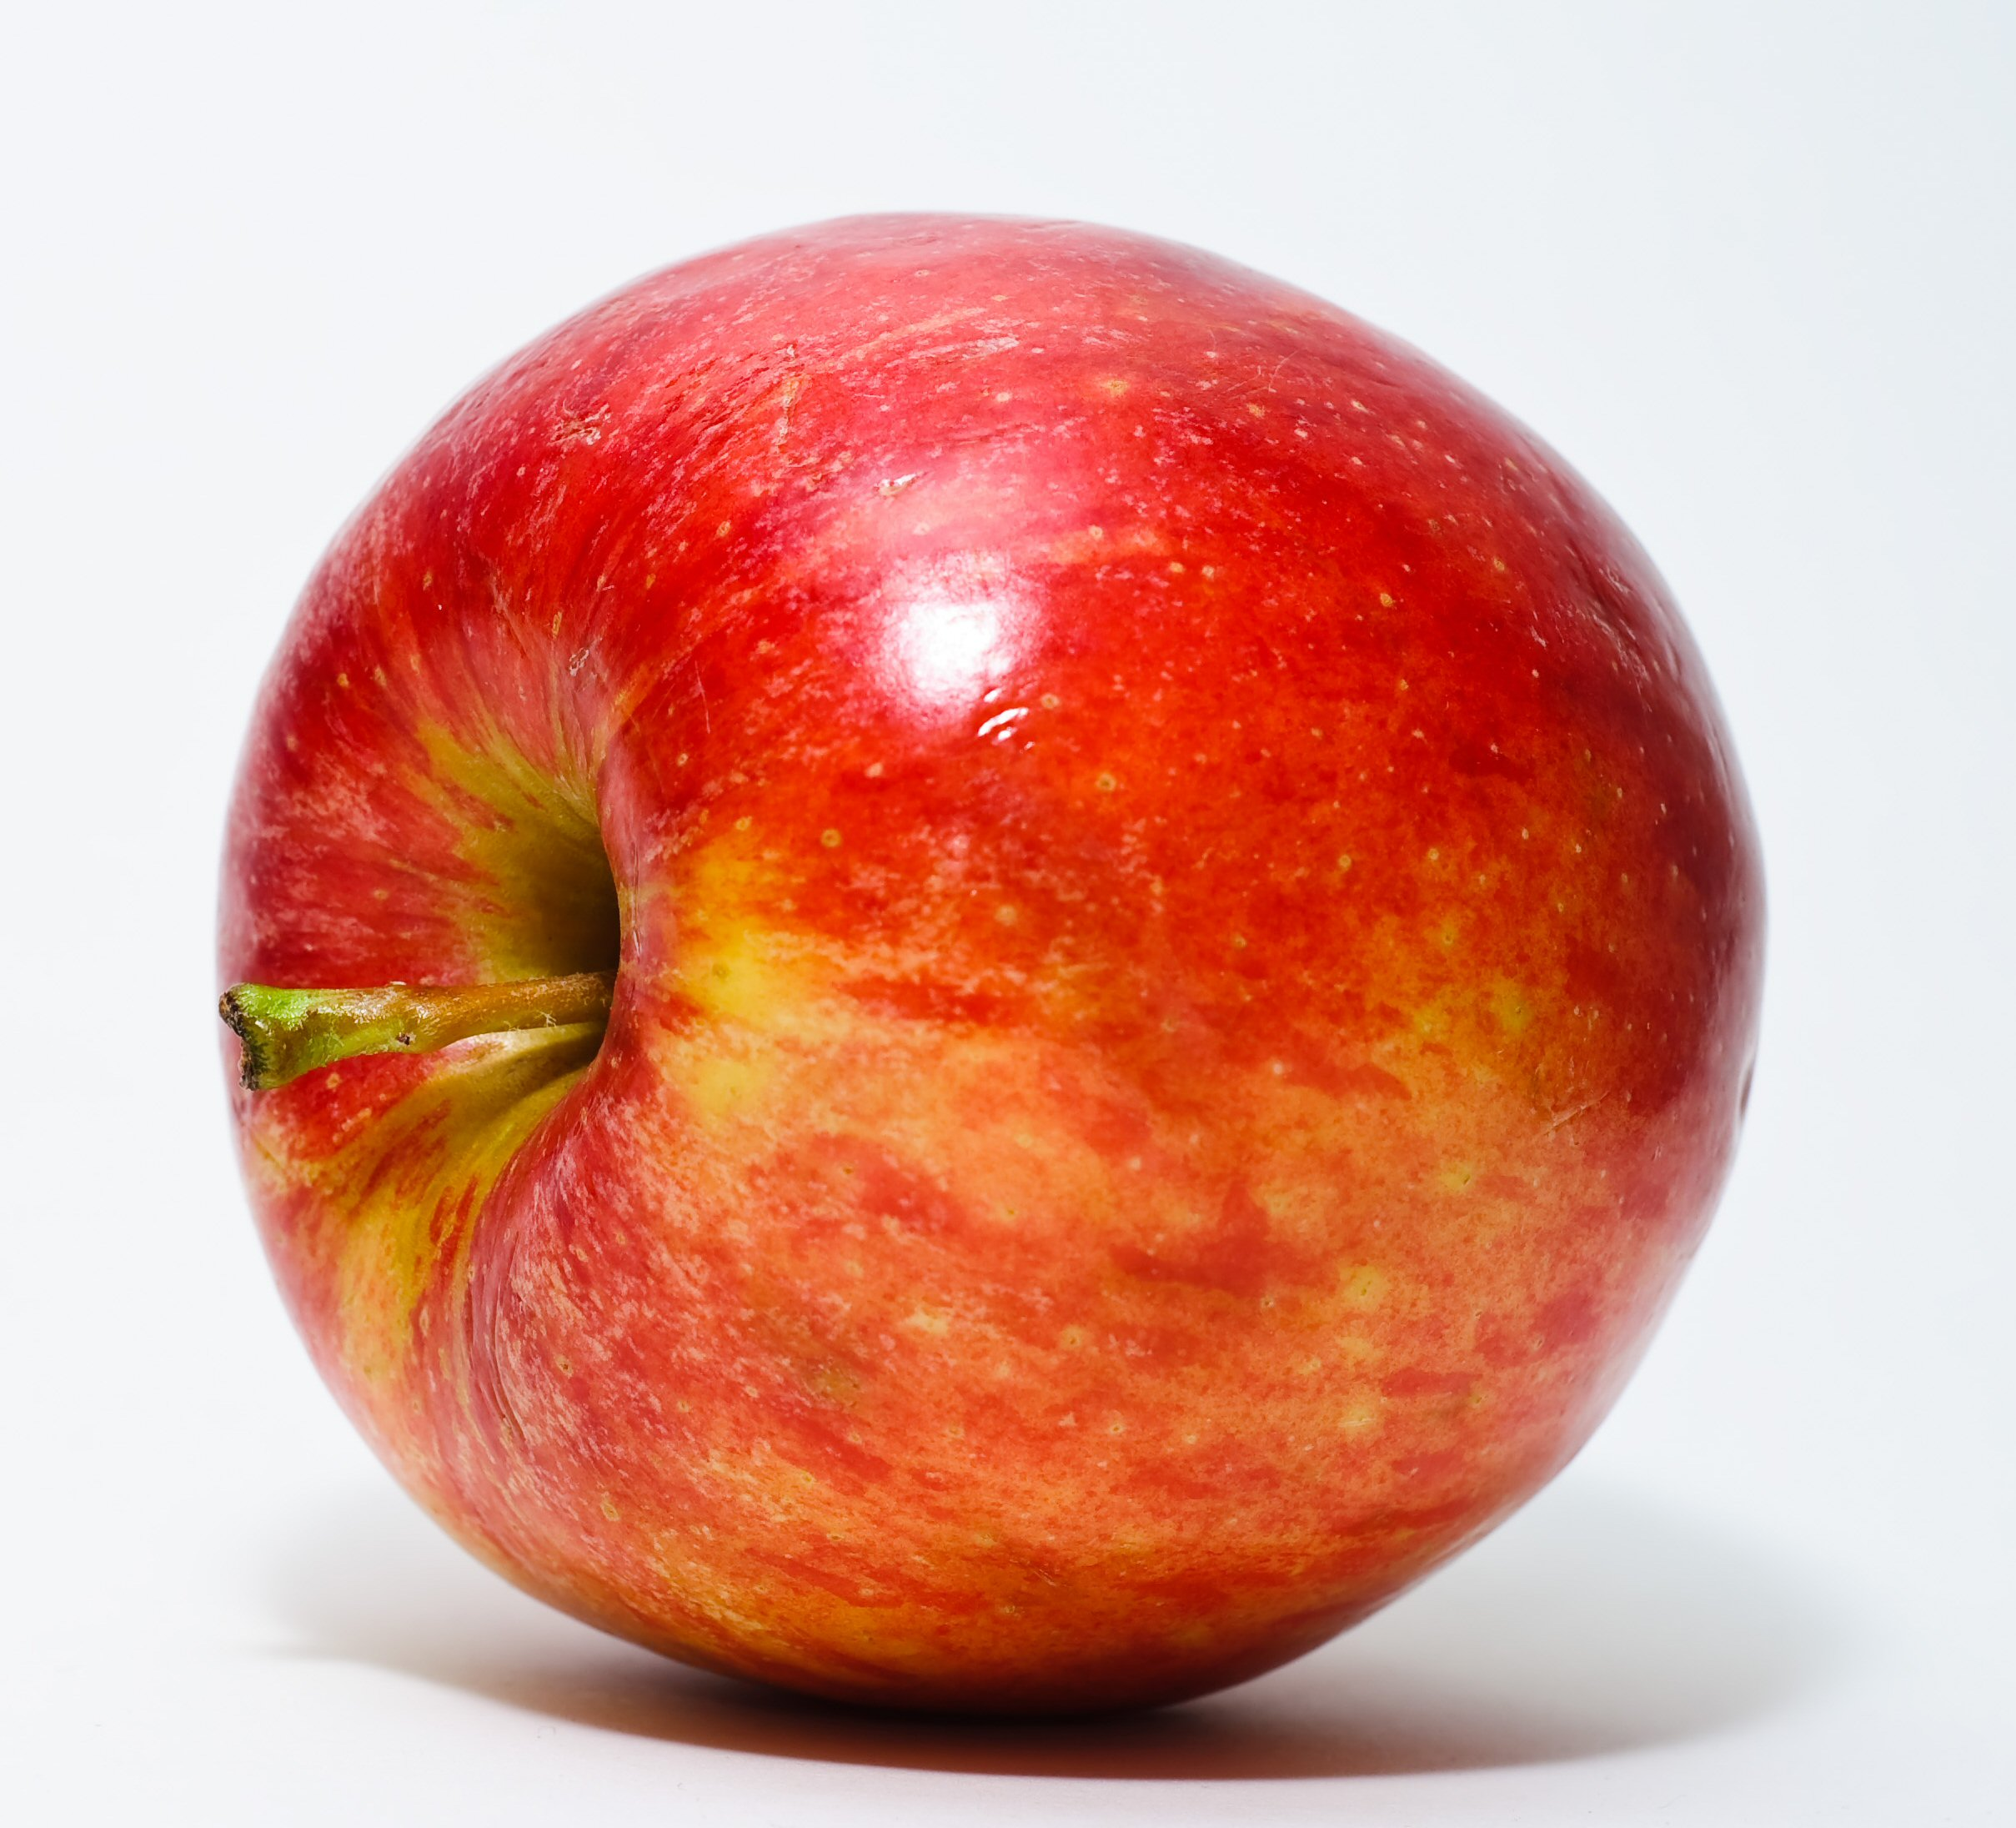 http://upload.wikimedia.org/wikipedia/commons/1/15/Red_Apple.jpg